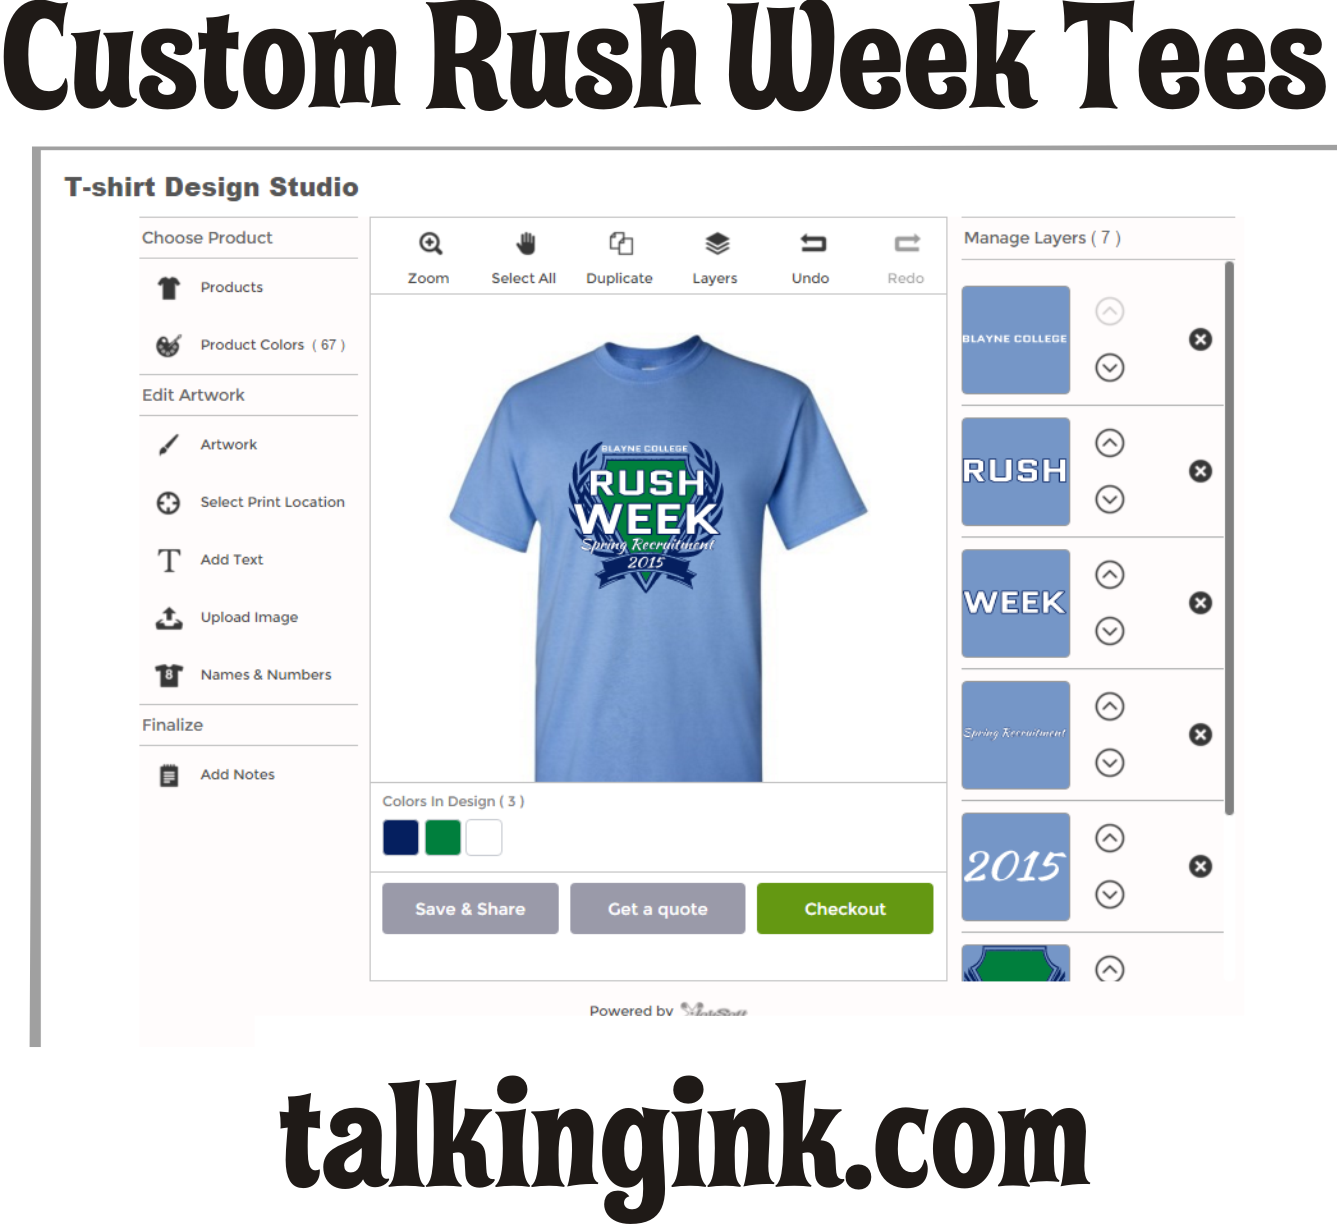 custom rush week tees